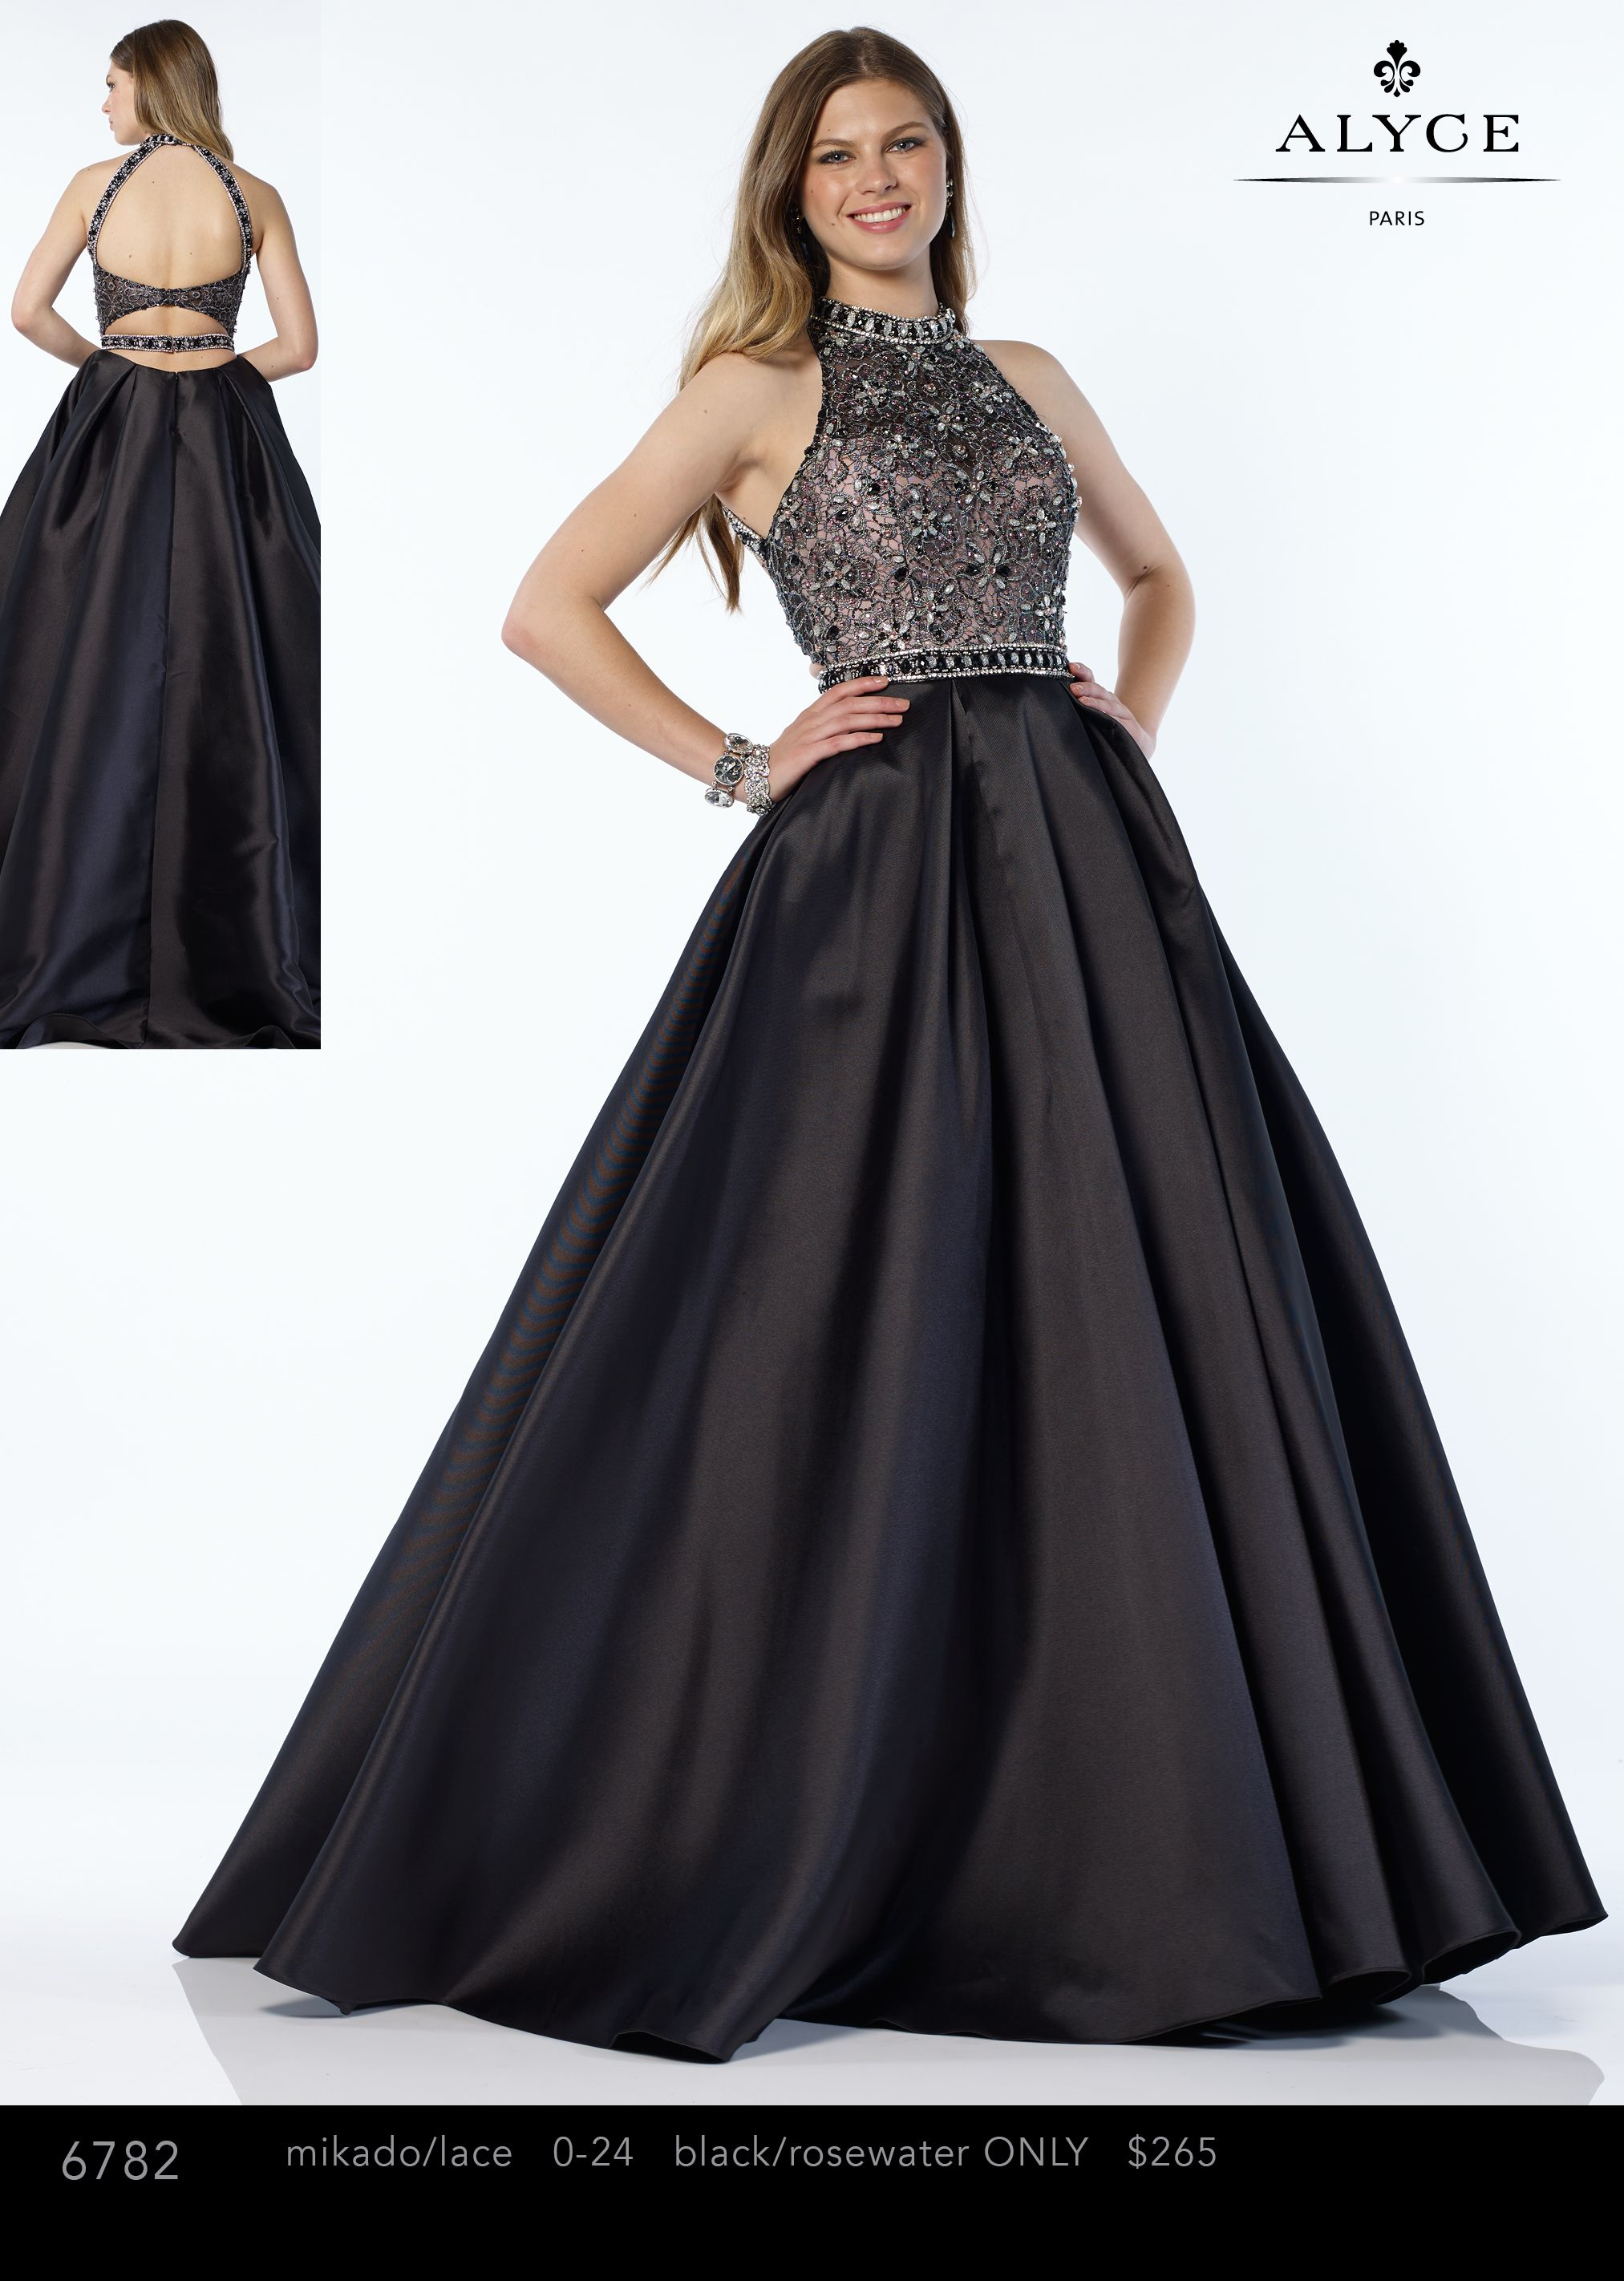 Exclusive Alyce Paris Style 6782 In Black/Ros e Size 6 | Prom ...